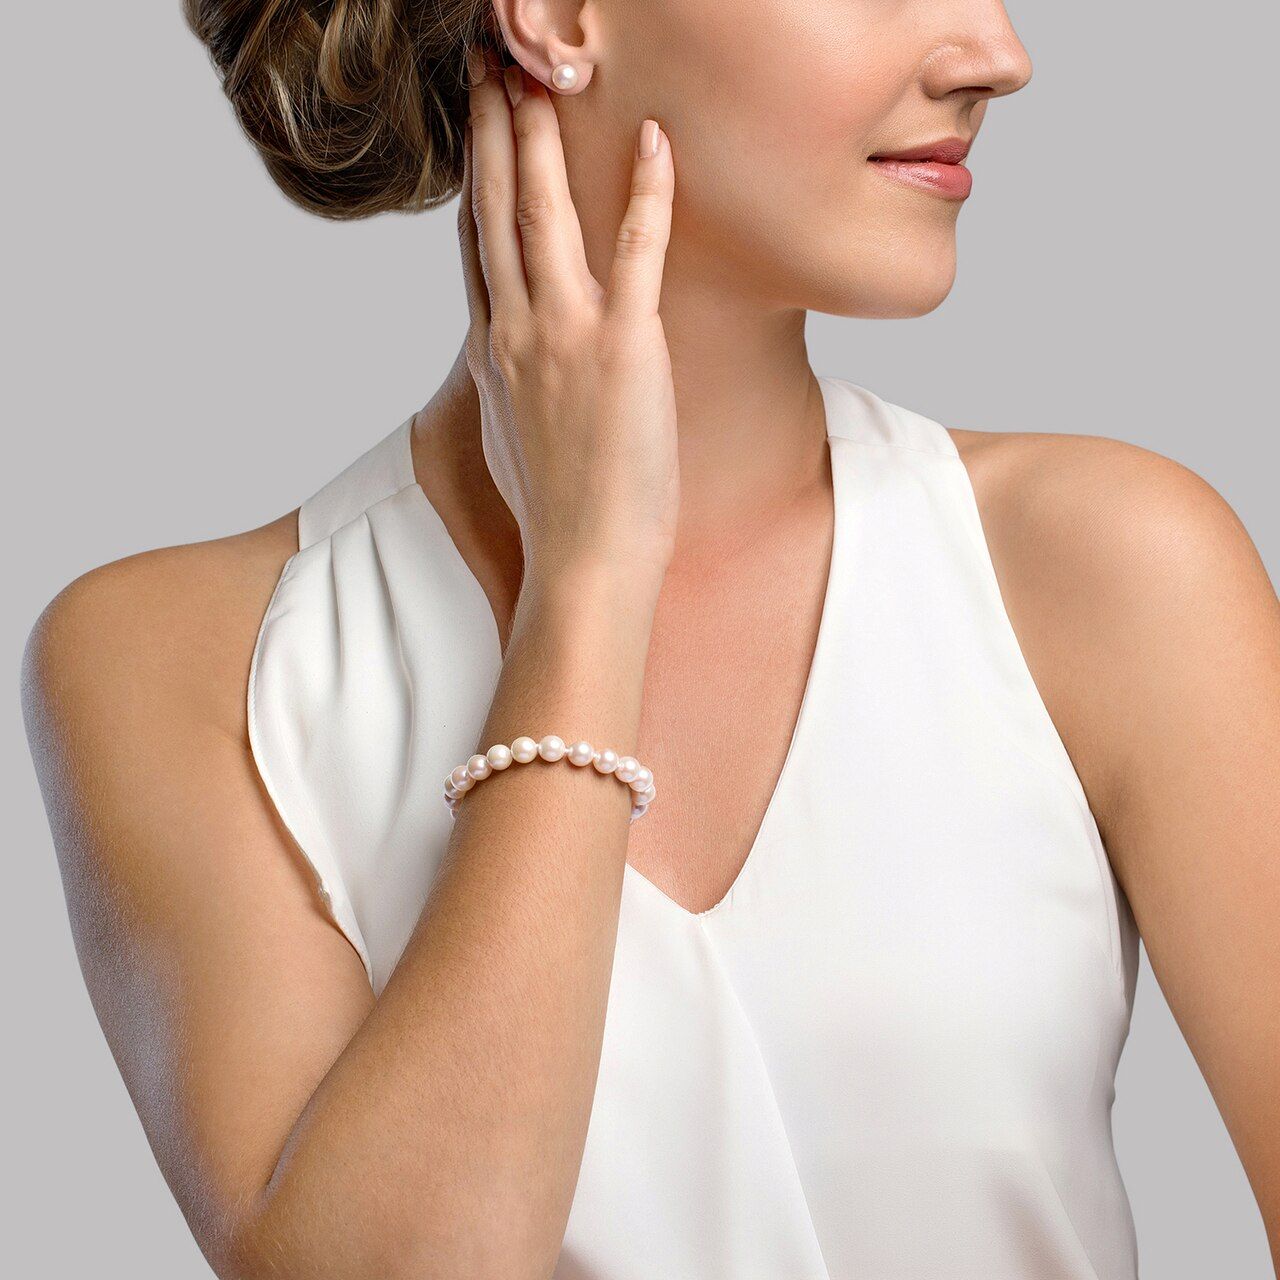 This elegant bracelet features 9.0-10.0mm White South Sea pearls, handpicked for their luminous luster